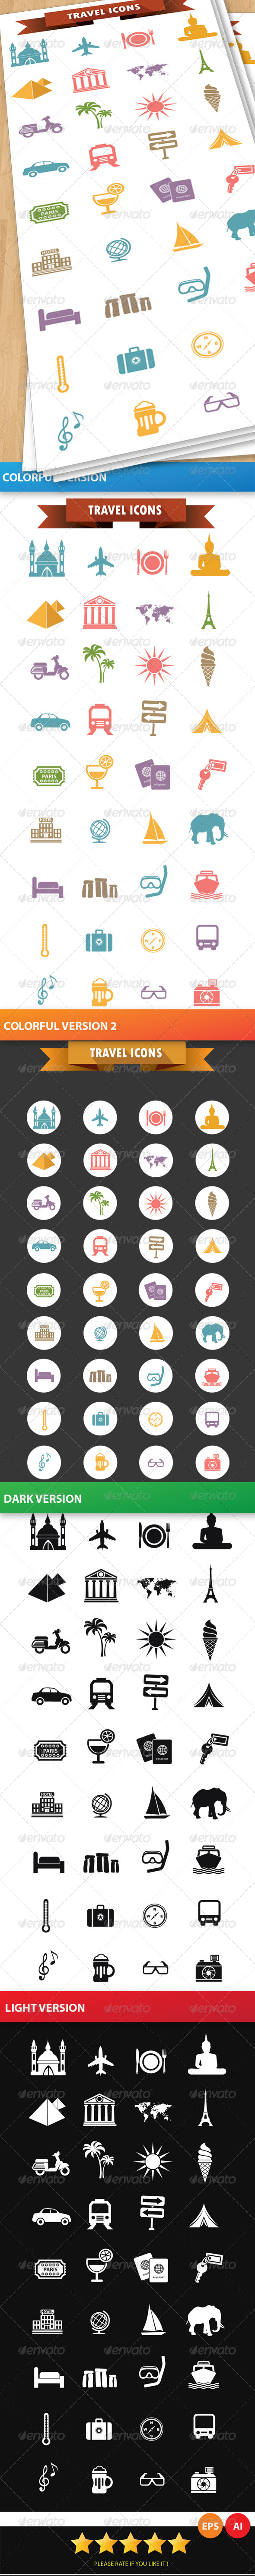 GraphicRiver Travel Icons 6365400